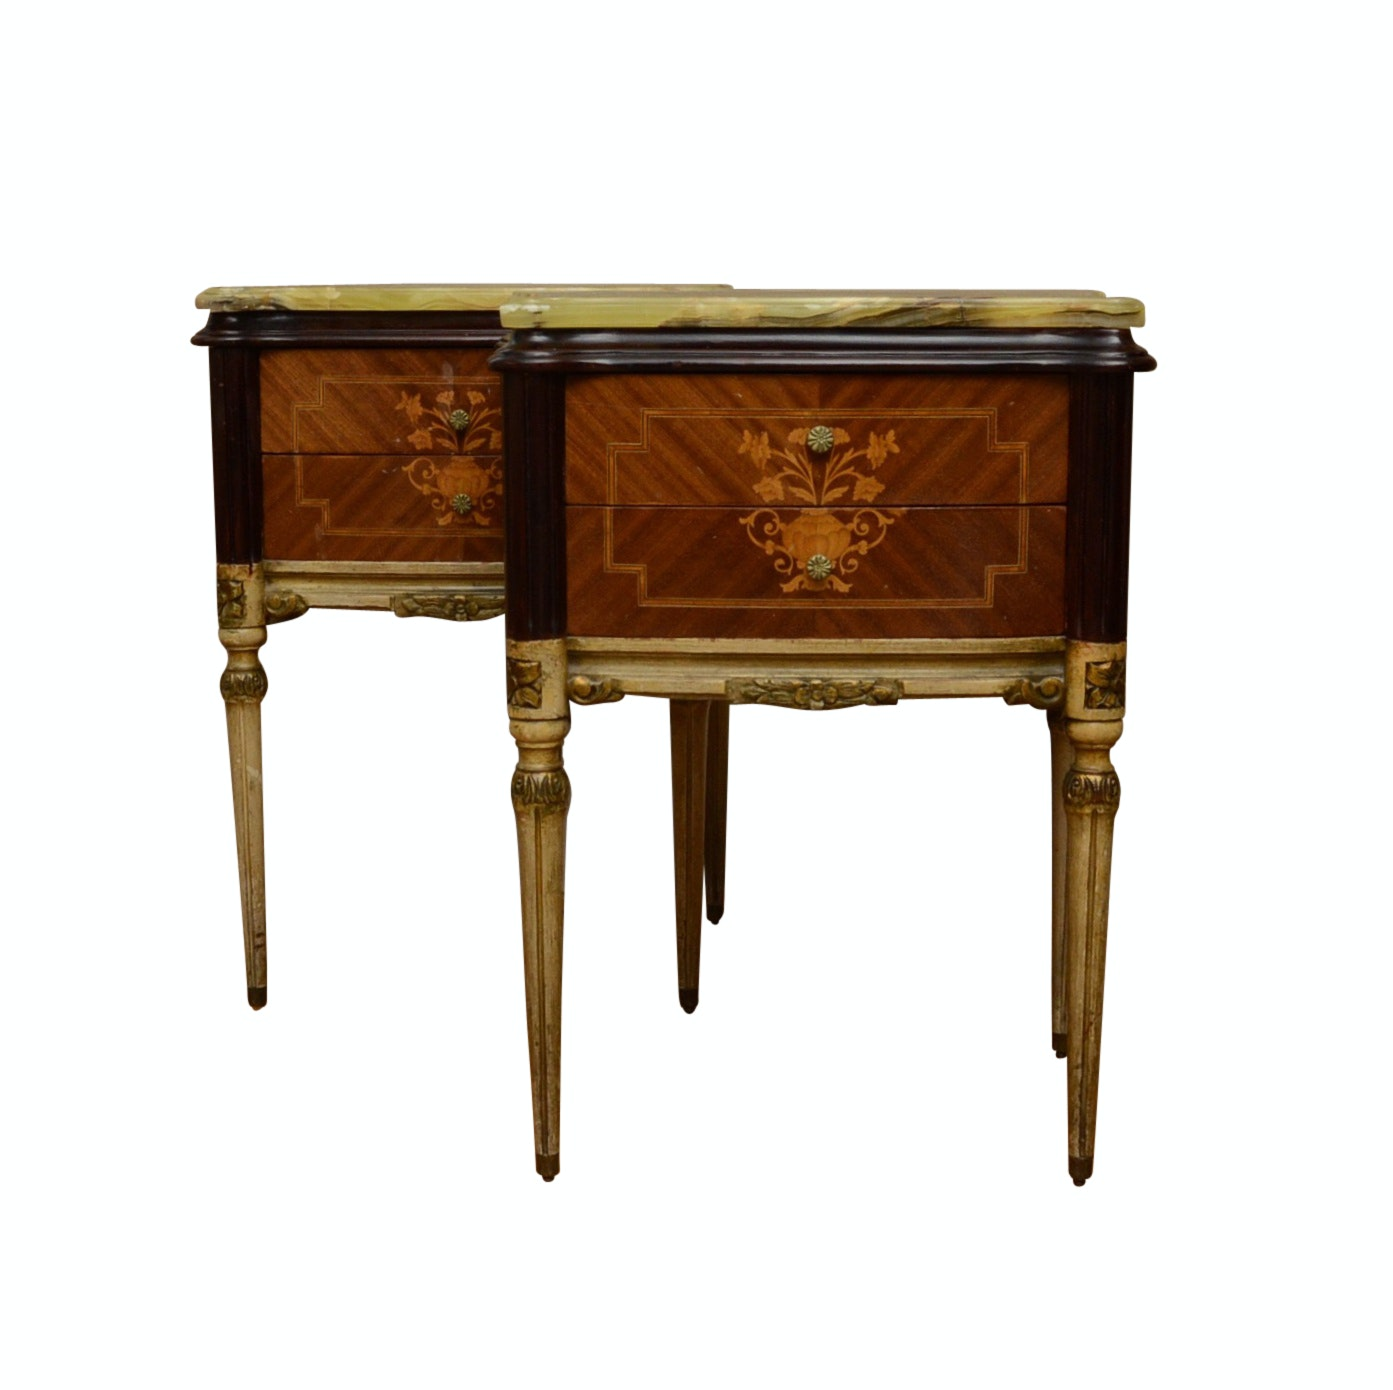 Pair of French Reproduction Side Tables with Onyx Top, Circa 1920's